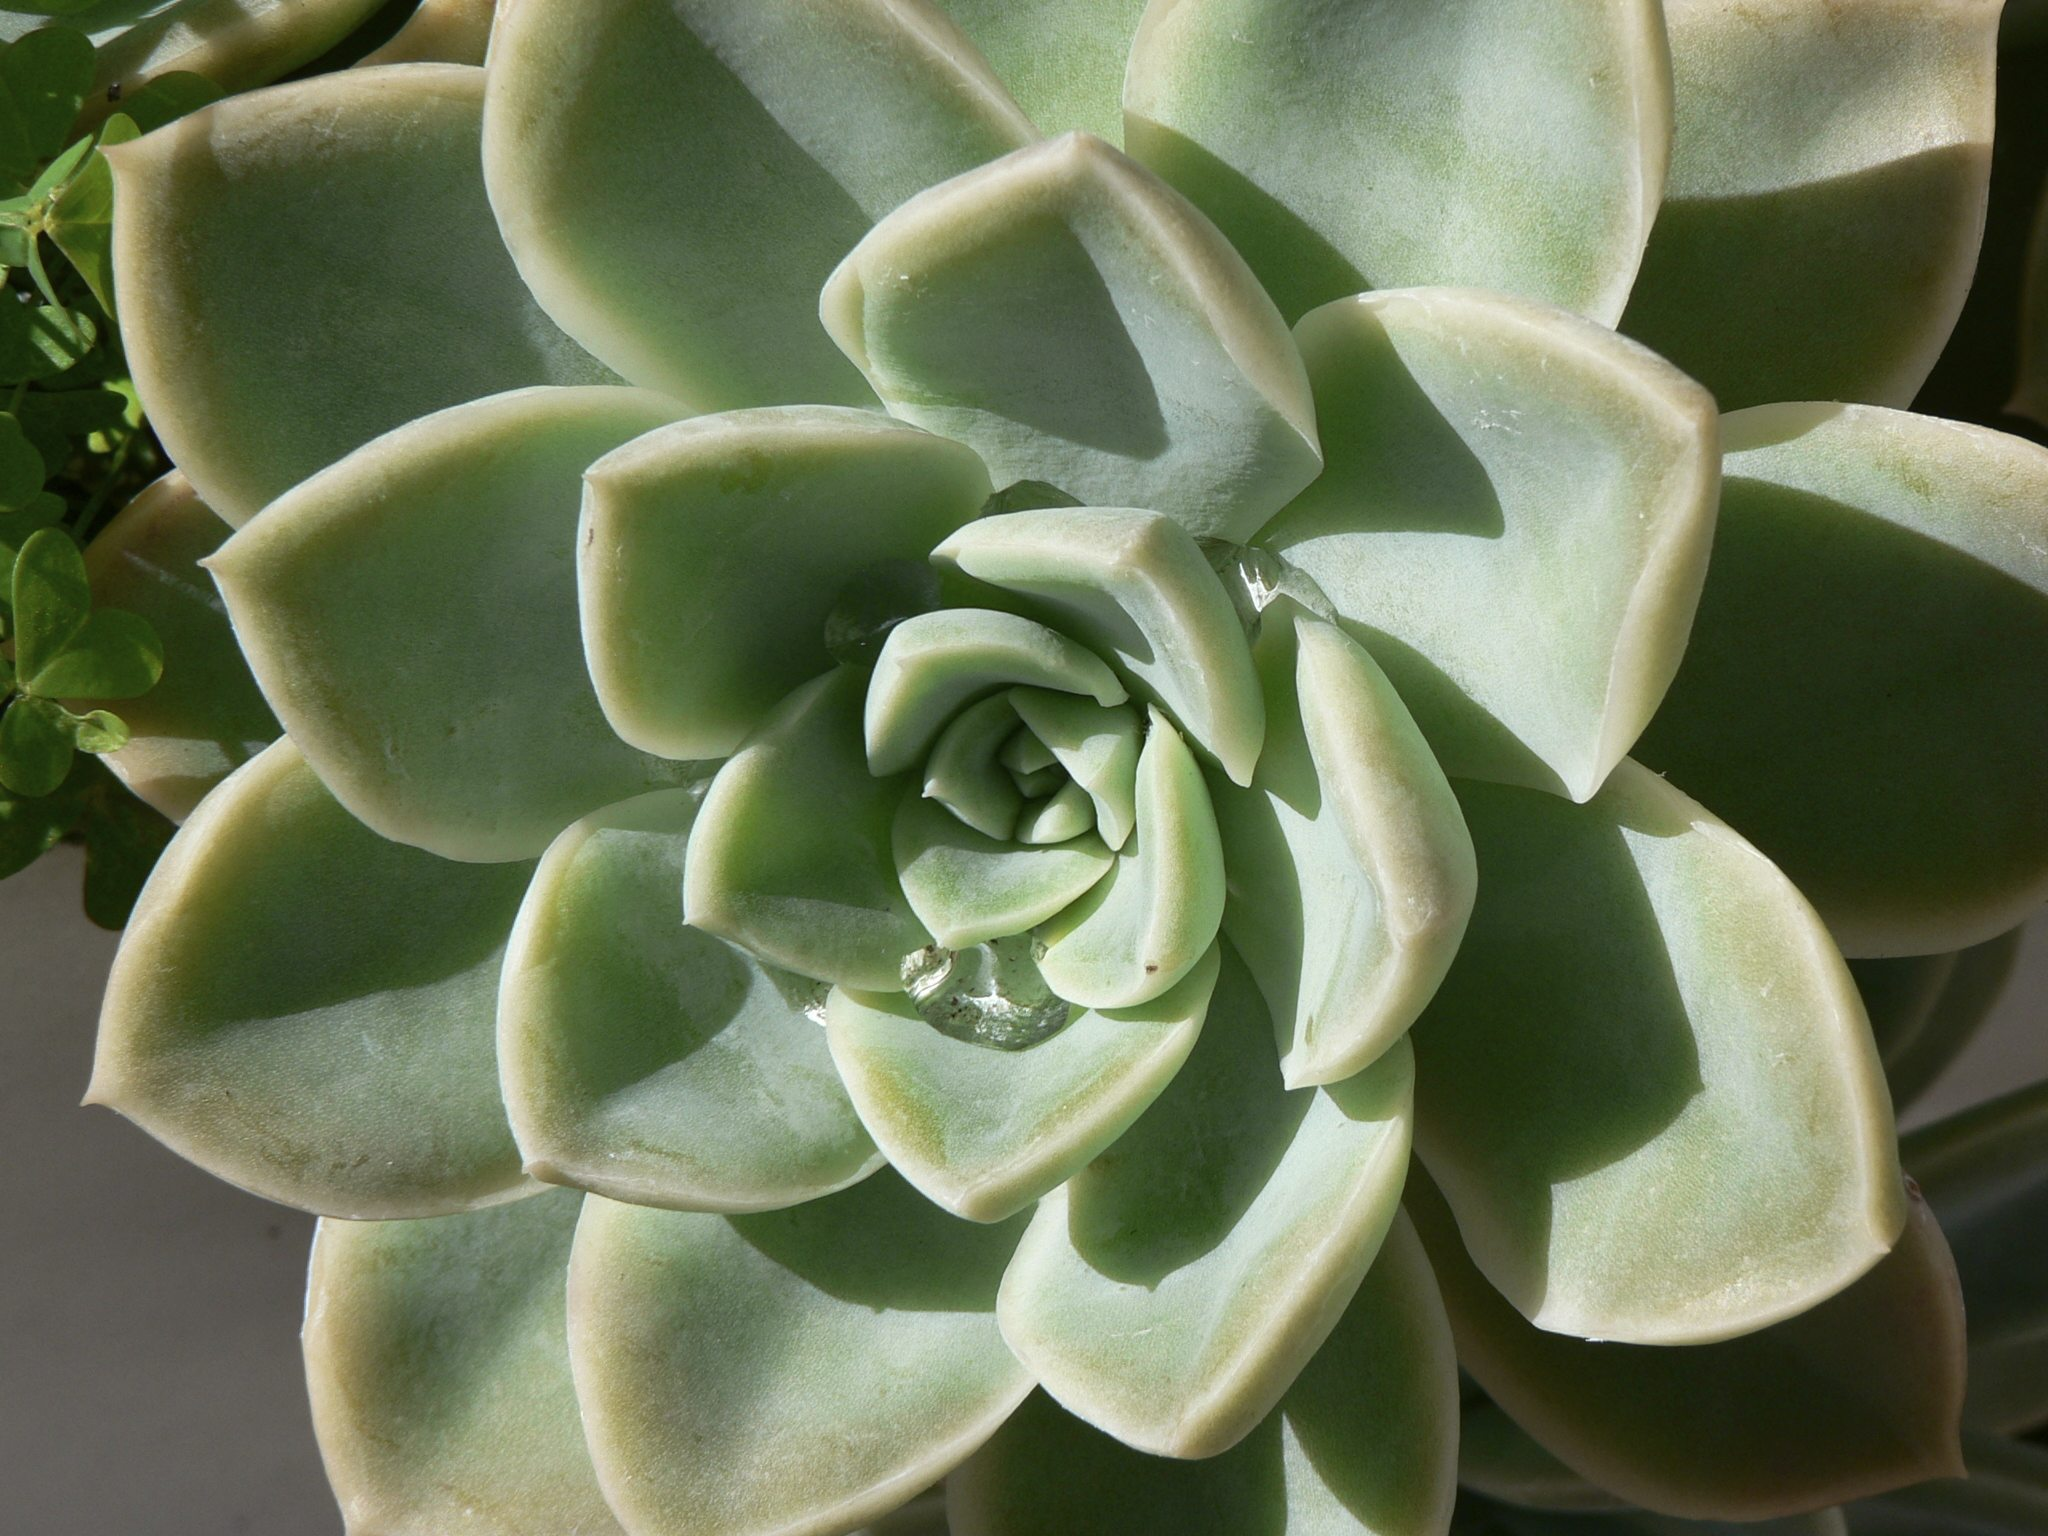 What Is A Succulent Plant Succulent Vs Cactus And Other